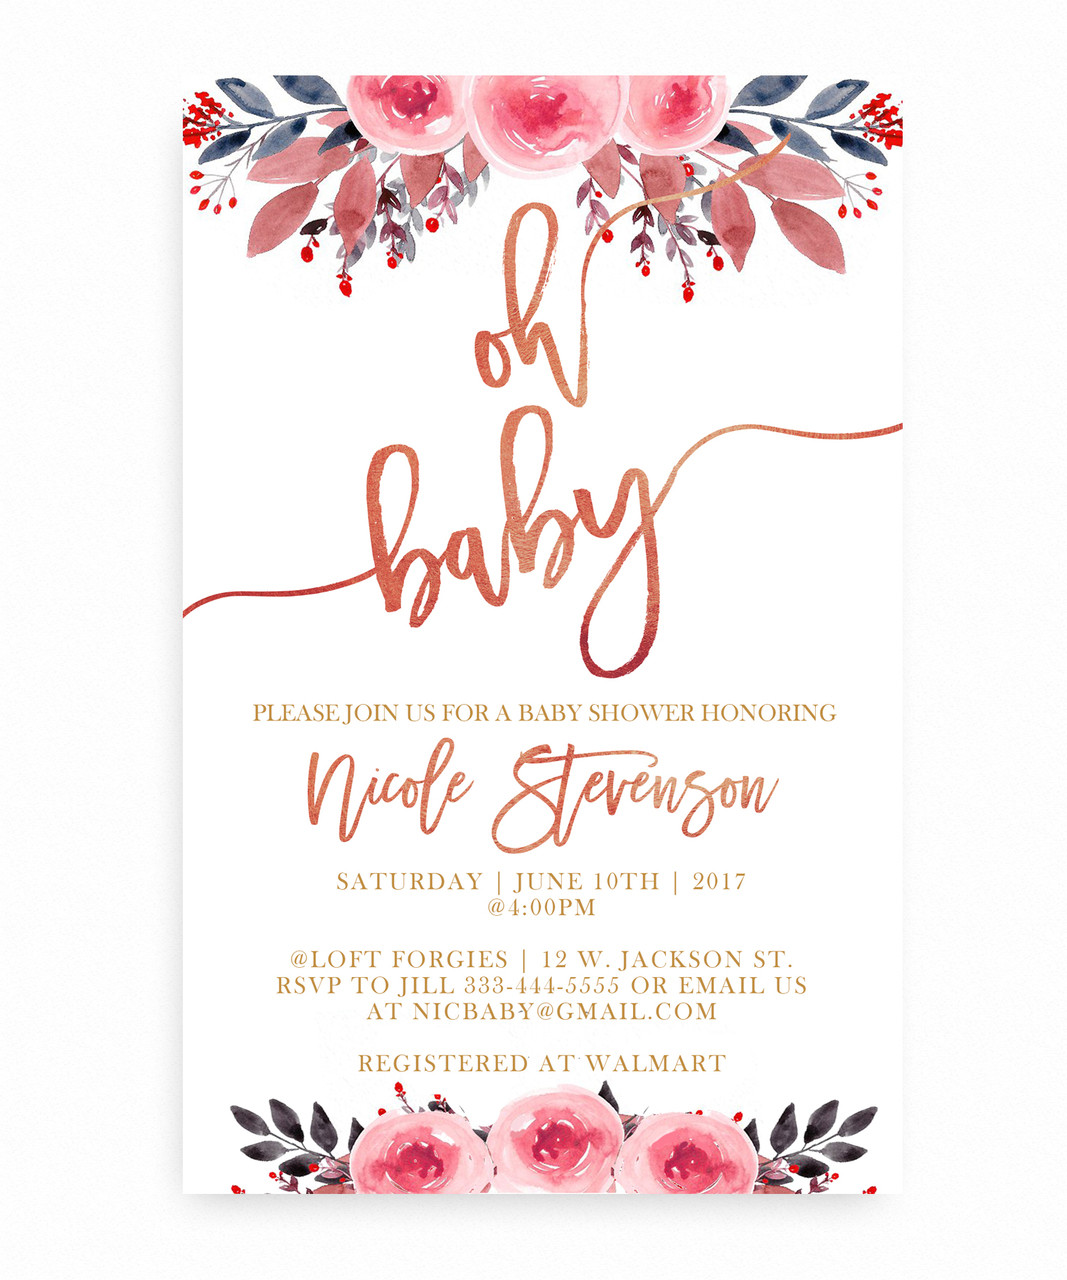 Watercolor flower baby shower invitation watercolor flower baby shower invitationfloral baby shower invitation watercolor flowers pink and filmwisefo